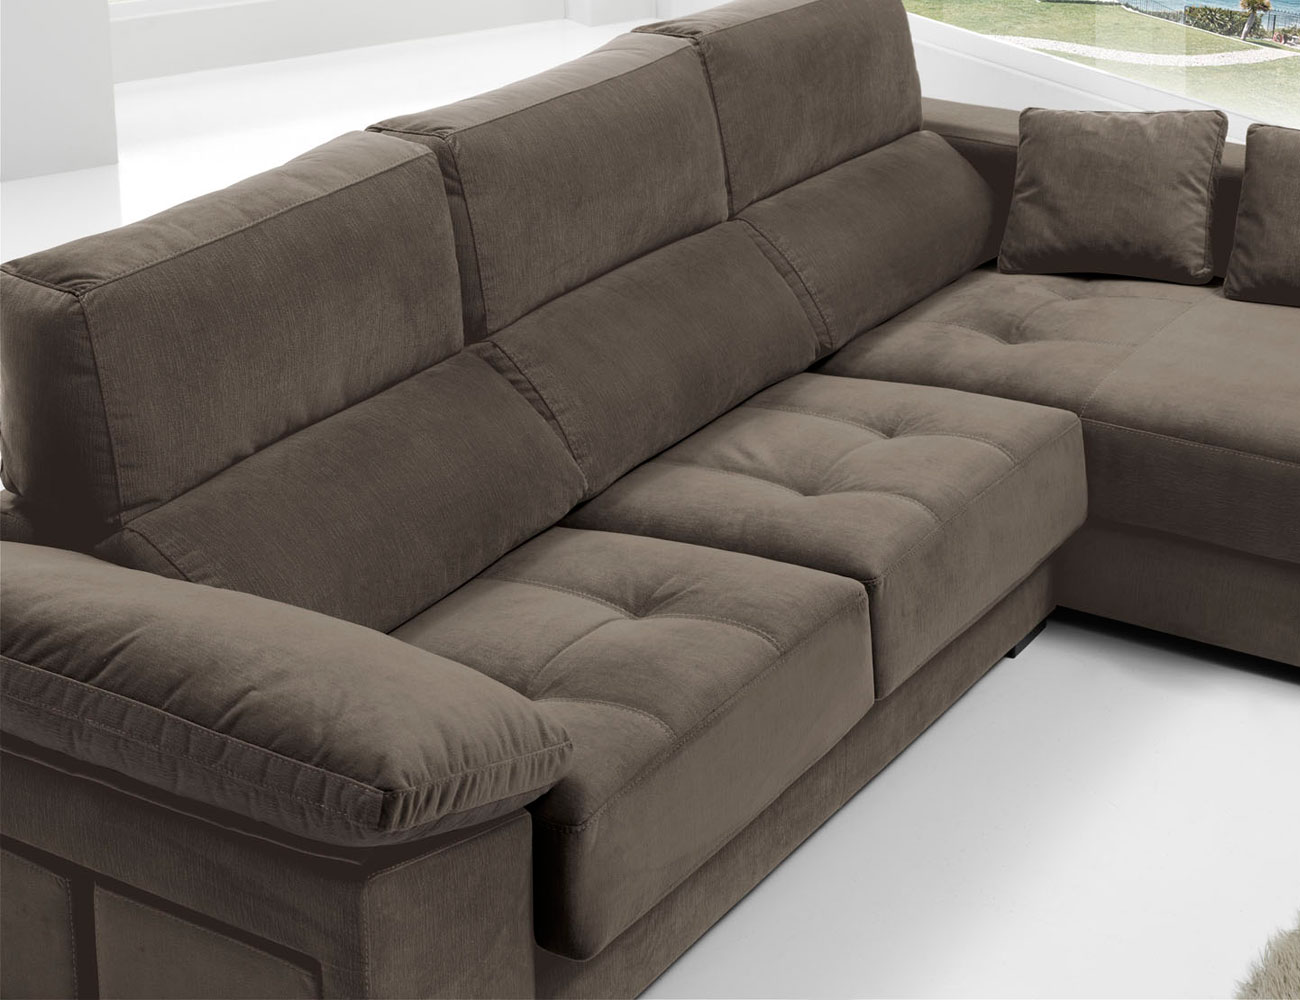 Sofa chaiselongue anti manchas bering pouf 227